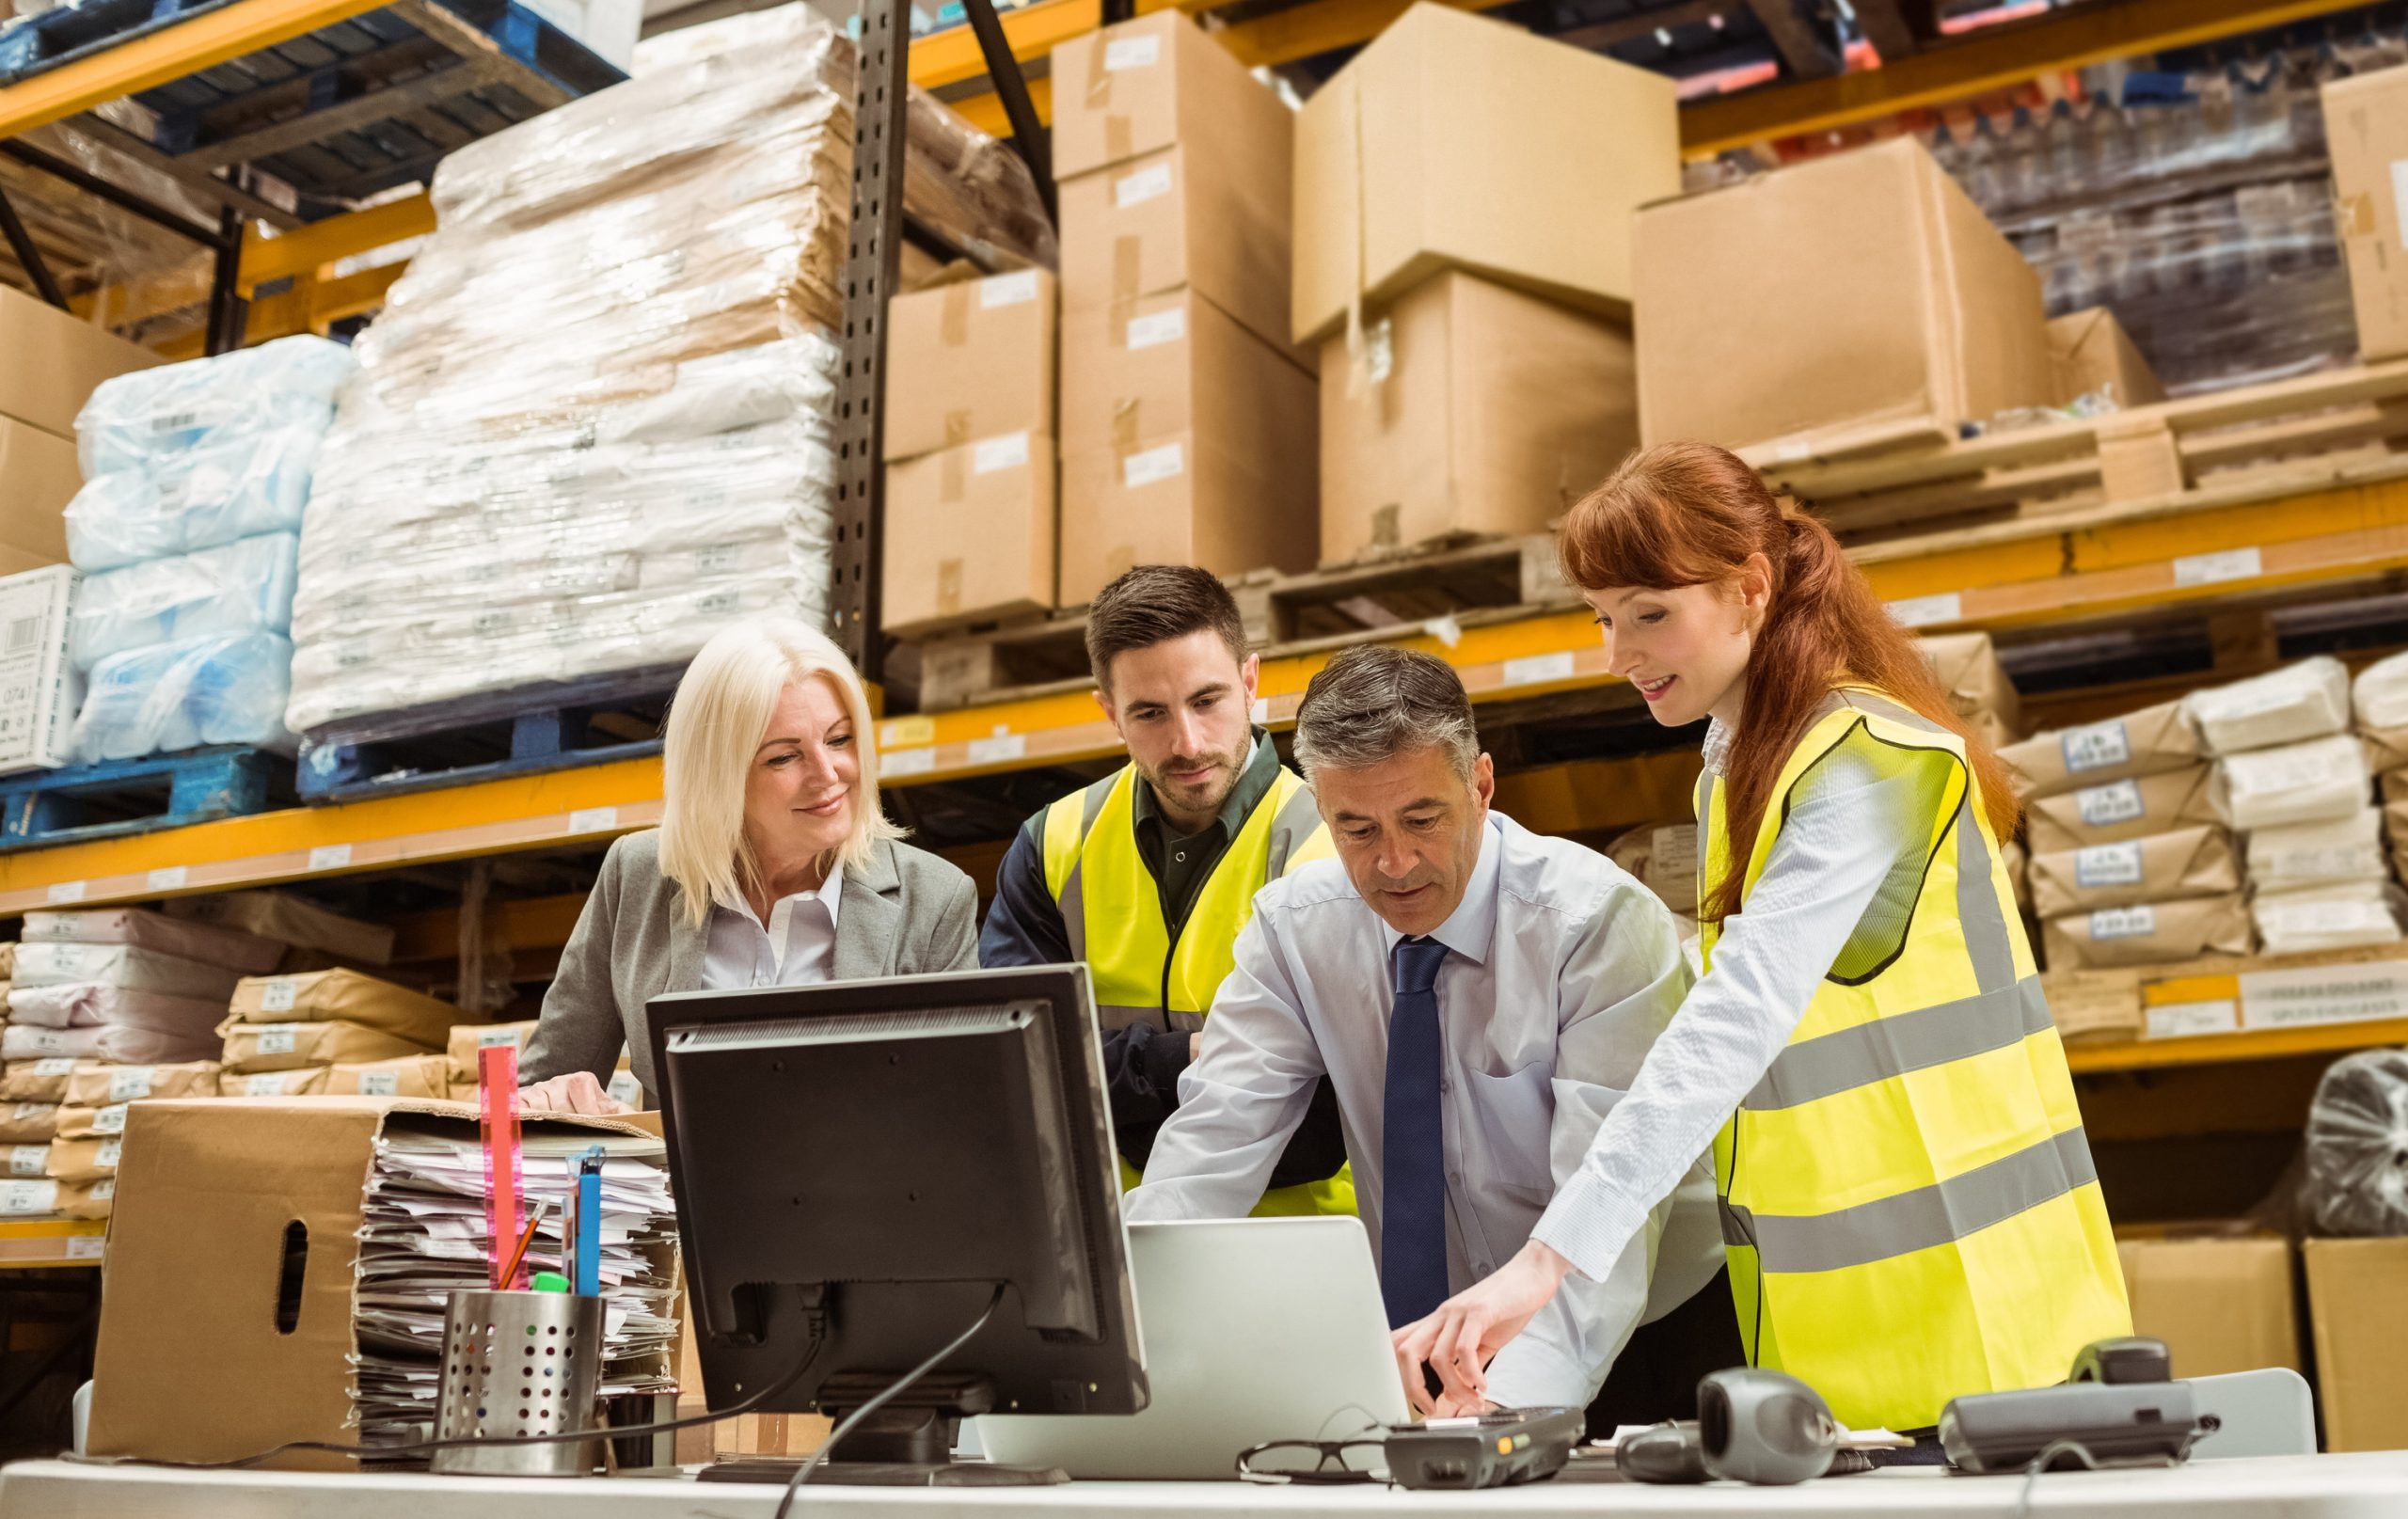 Top 5 Reasons a Flexible WMS That You Can Customize is Important